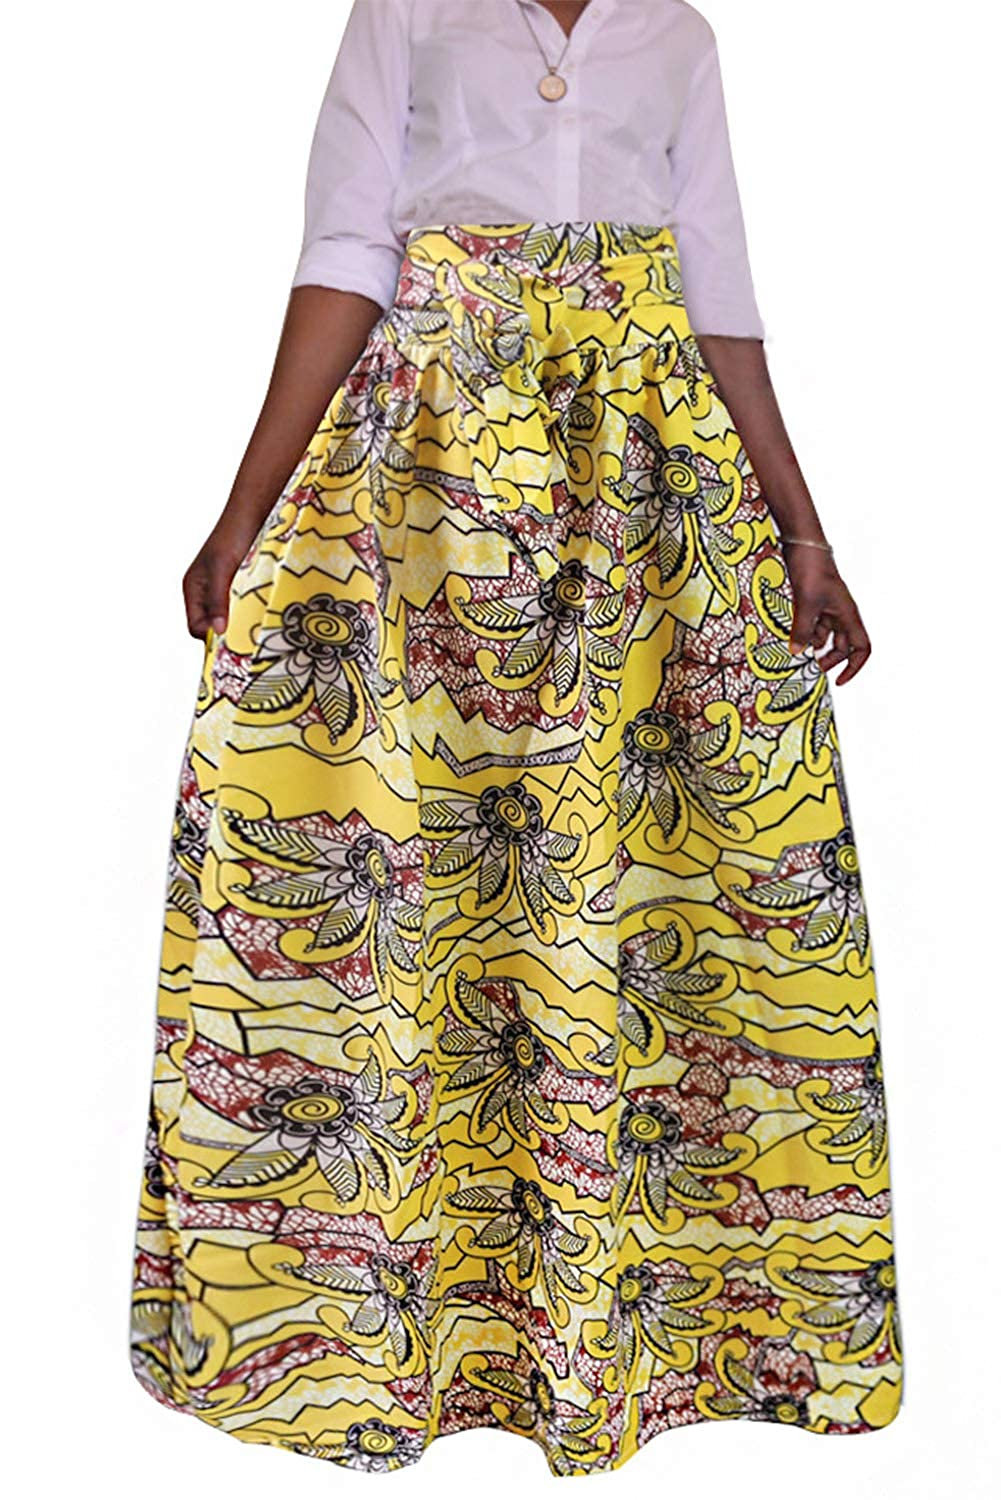 Tynora Women Fashion African Floral Print High Waist Pleated A-Line Maxi Long Skirt